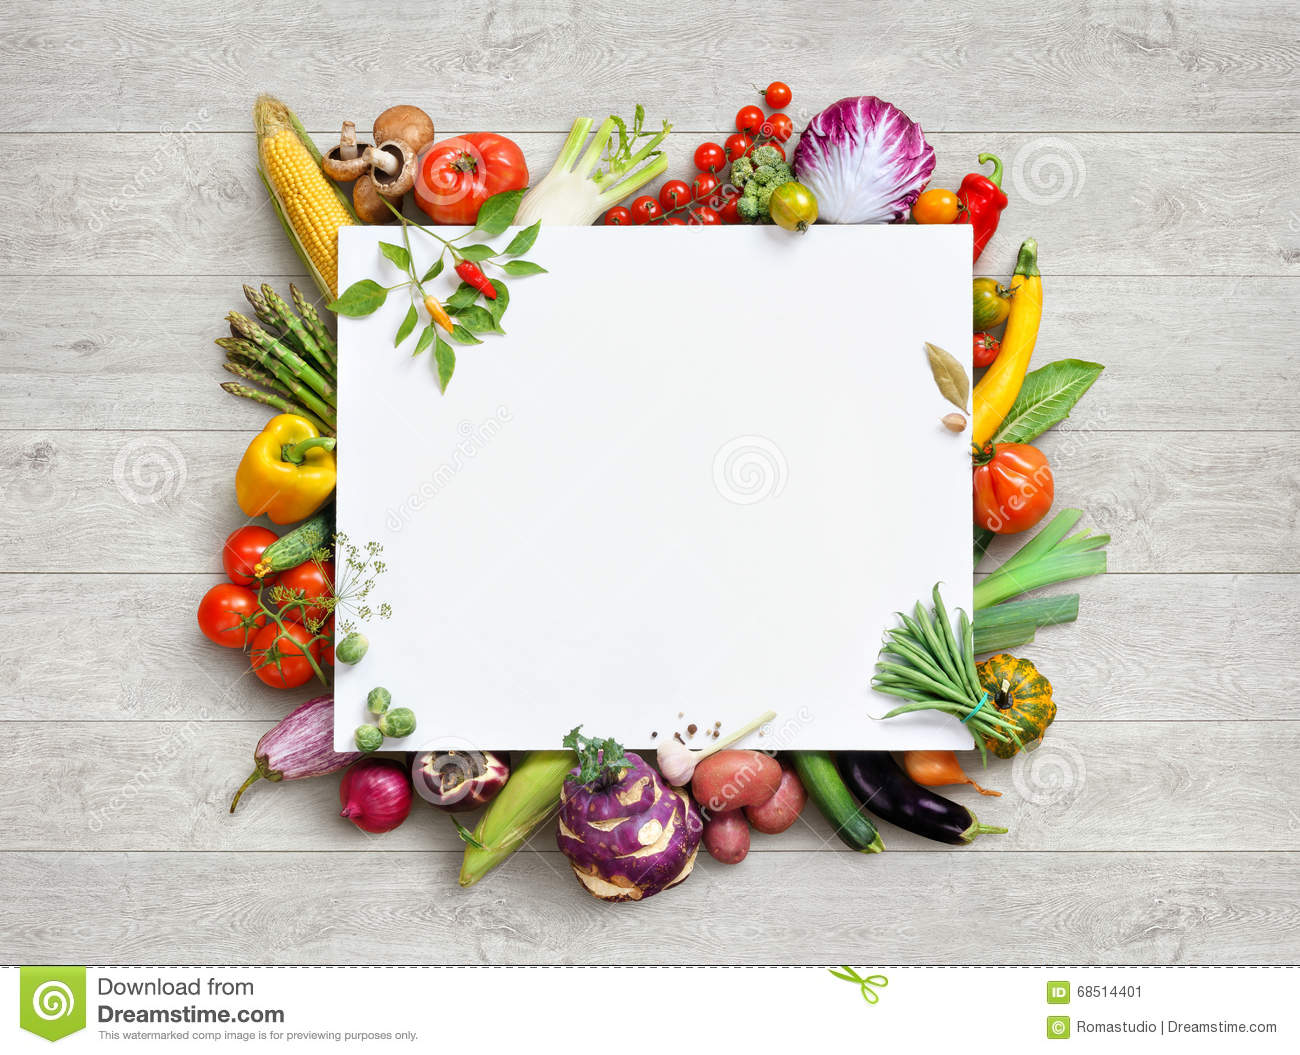 Food background studio photo of different fruits and vegetables - Healthy Food And Copy Space Studio Photo Of Different Fruits And Vegetables Stock Image